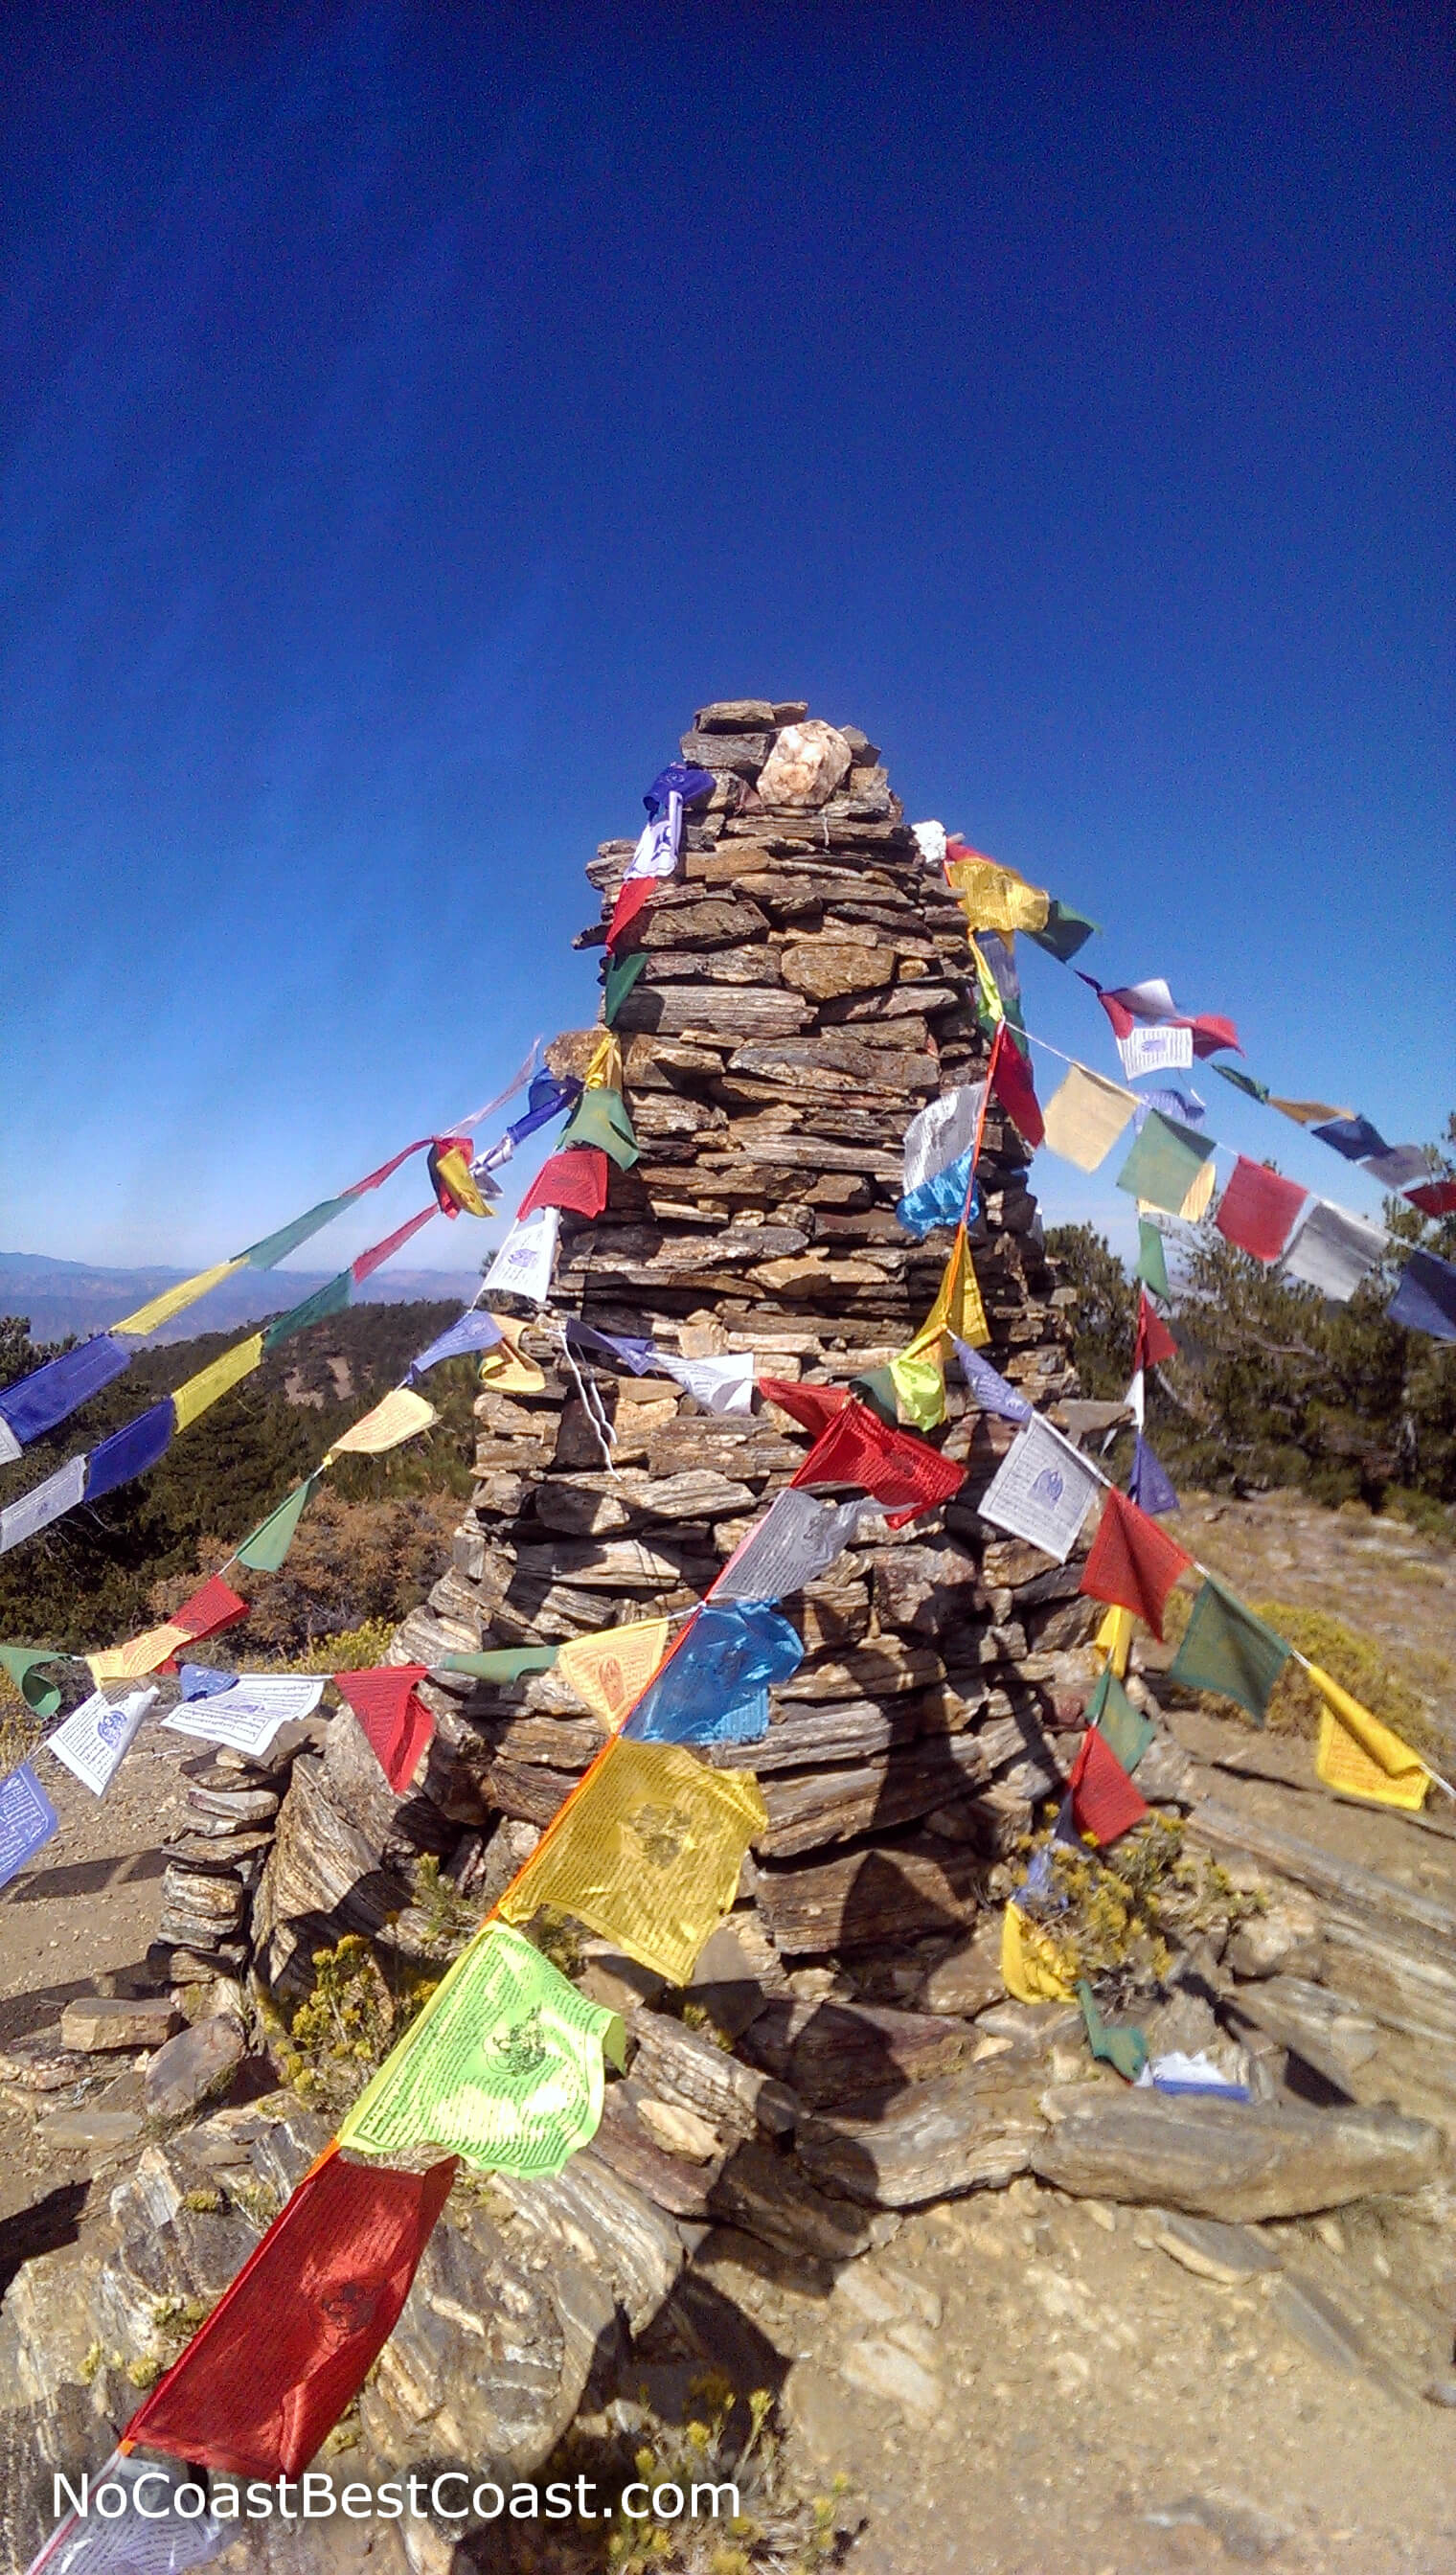 The giant stone cairn adorned with prayer flags marking the summit of Sawmill Mountain